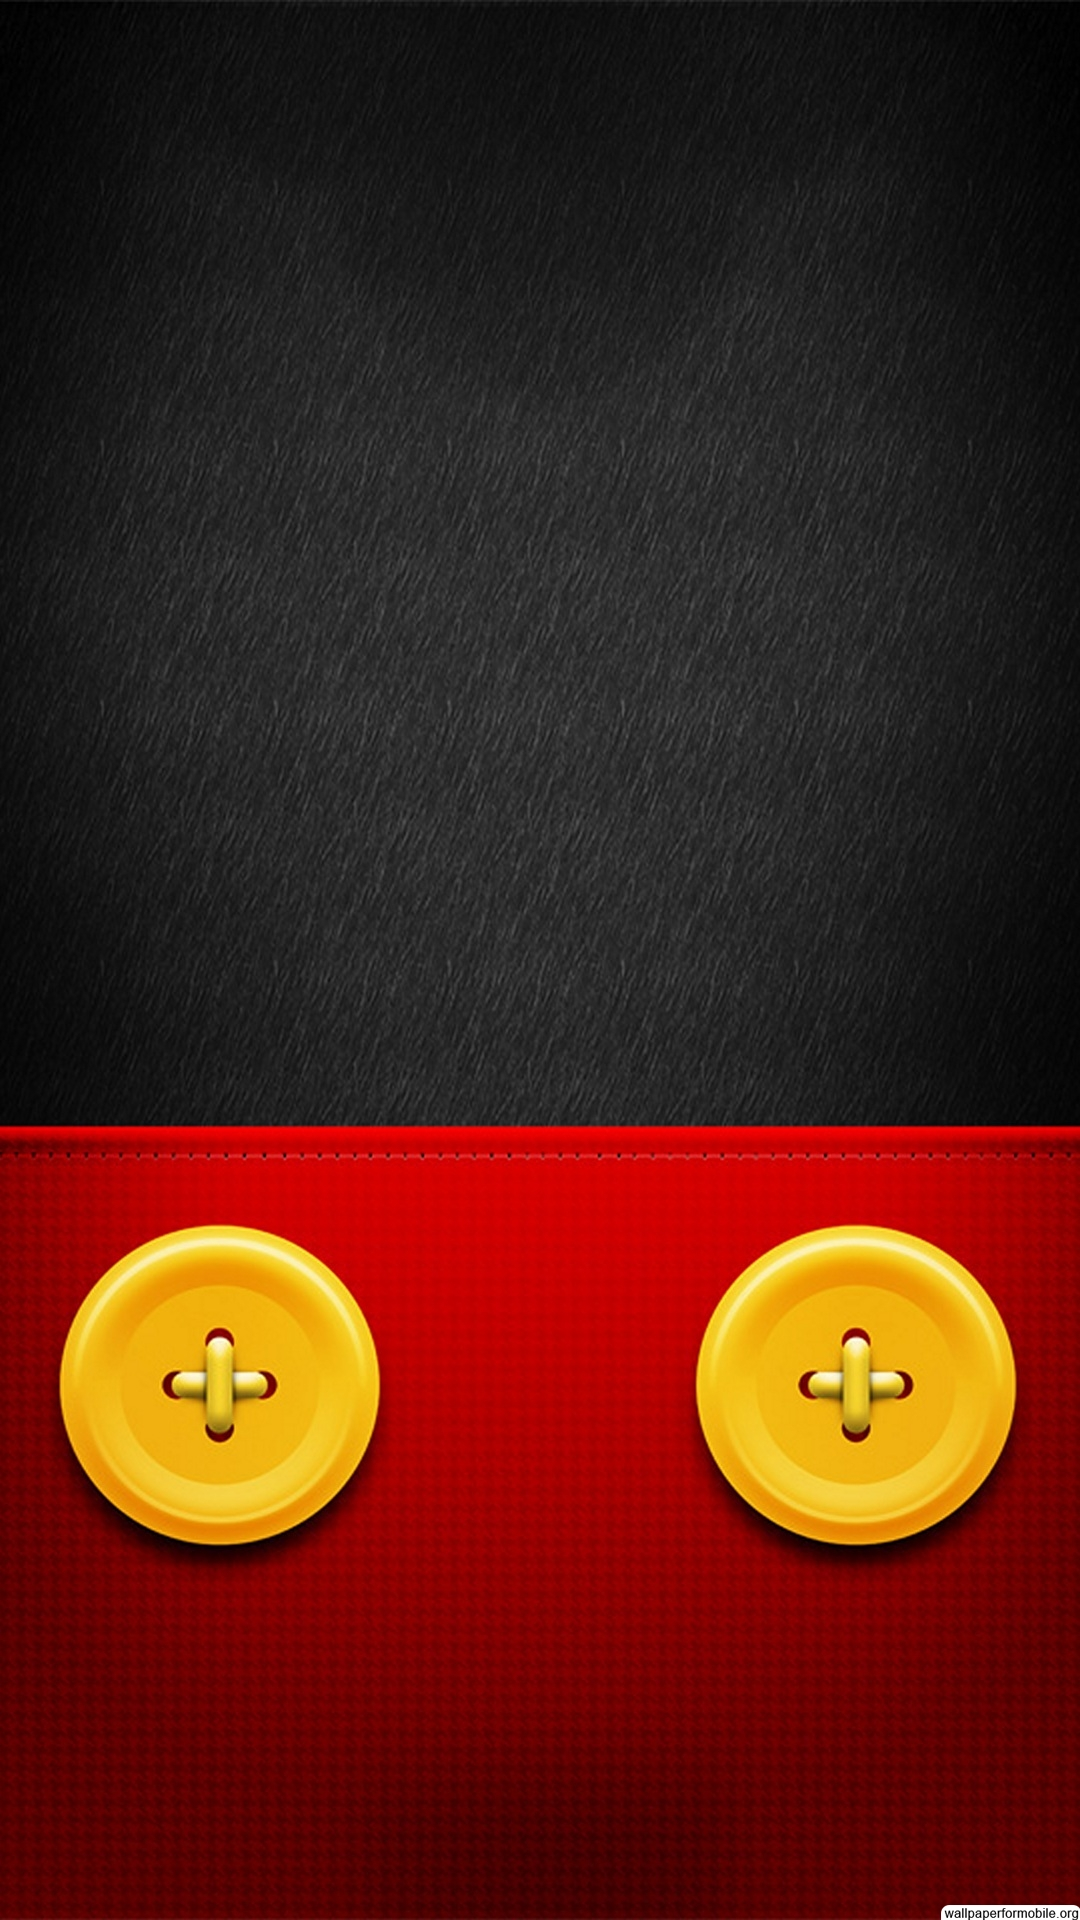 Mickey Mouse Wallpaper For Iphone | Wallpaper for Mobile